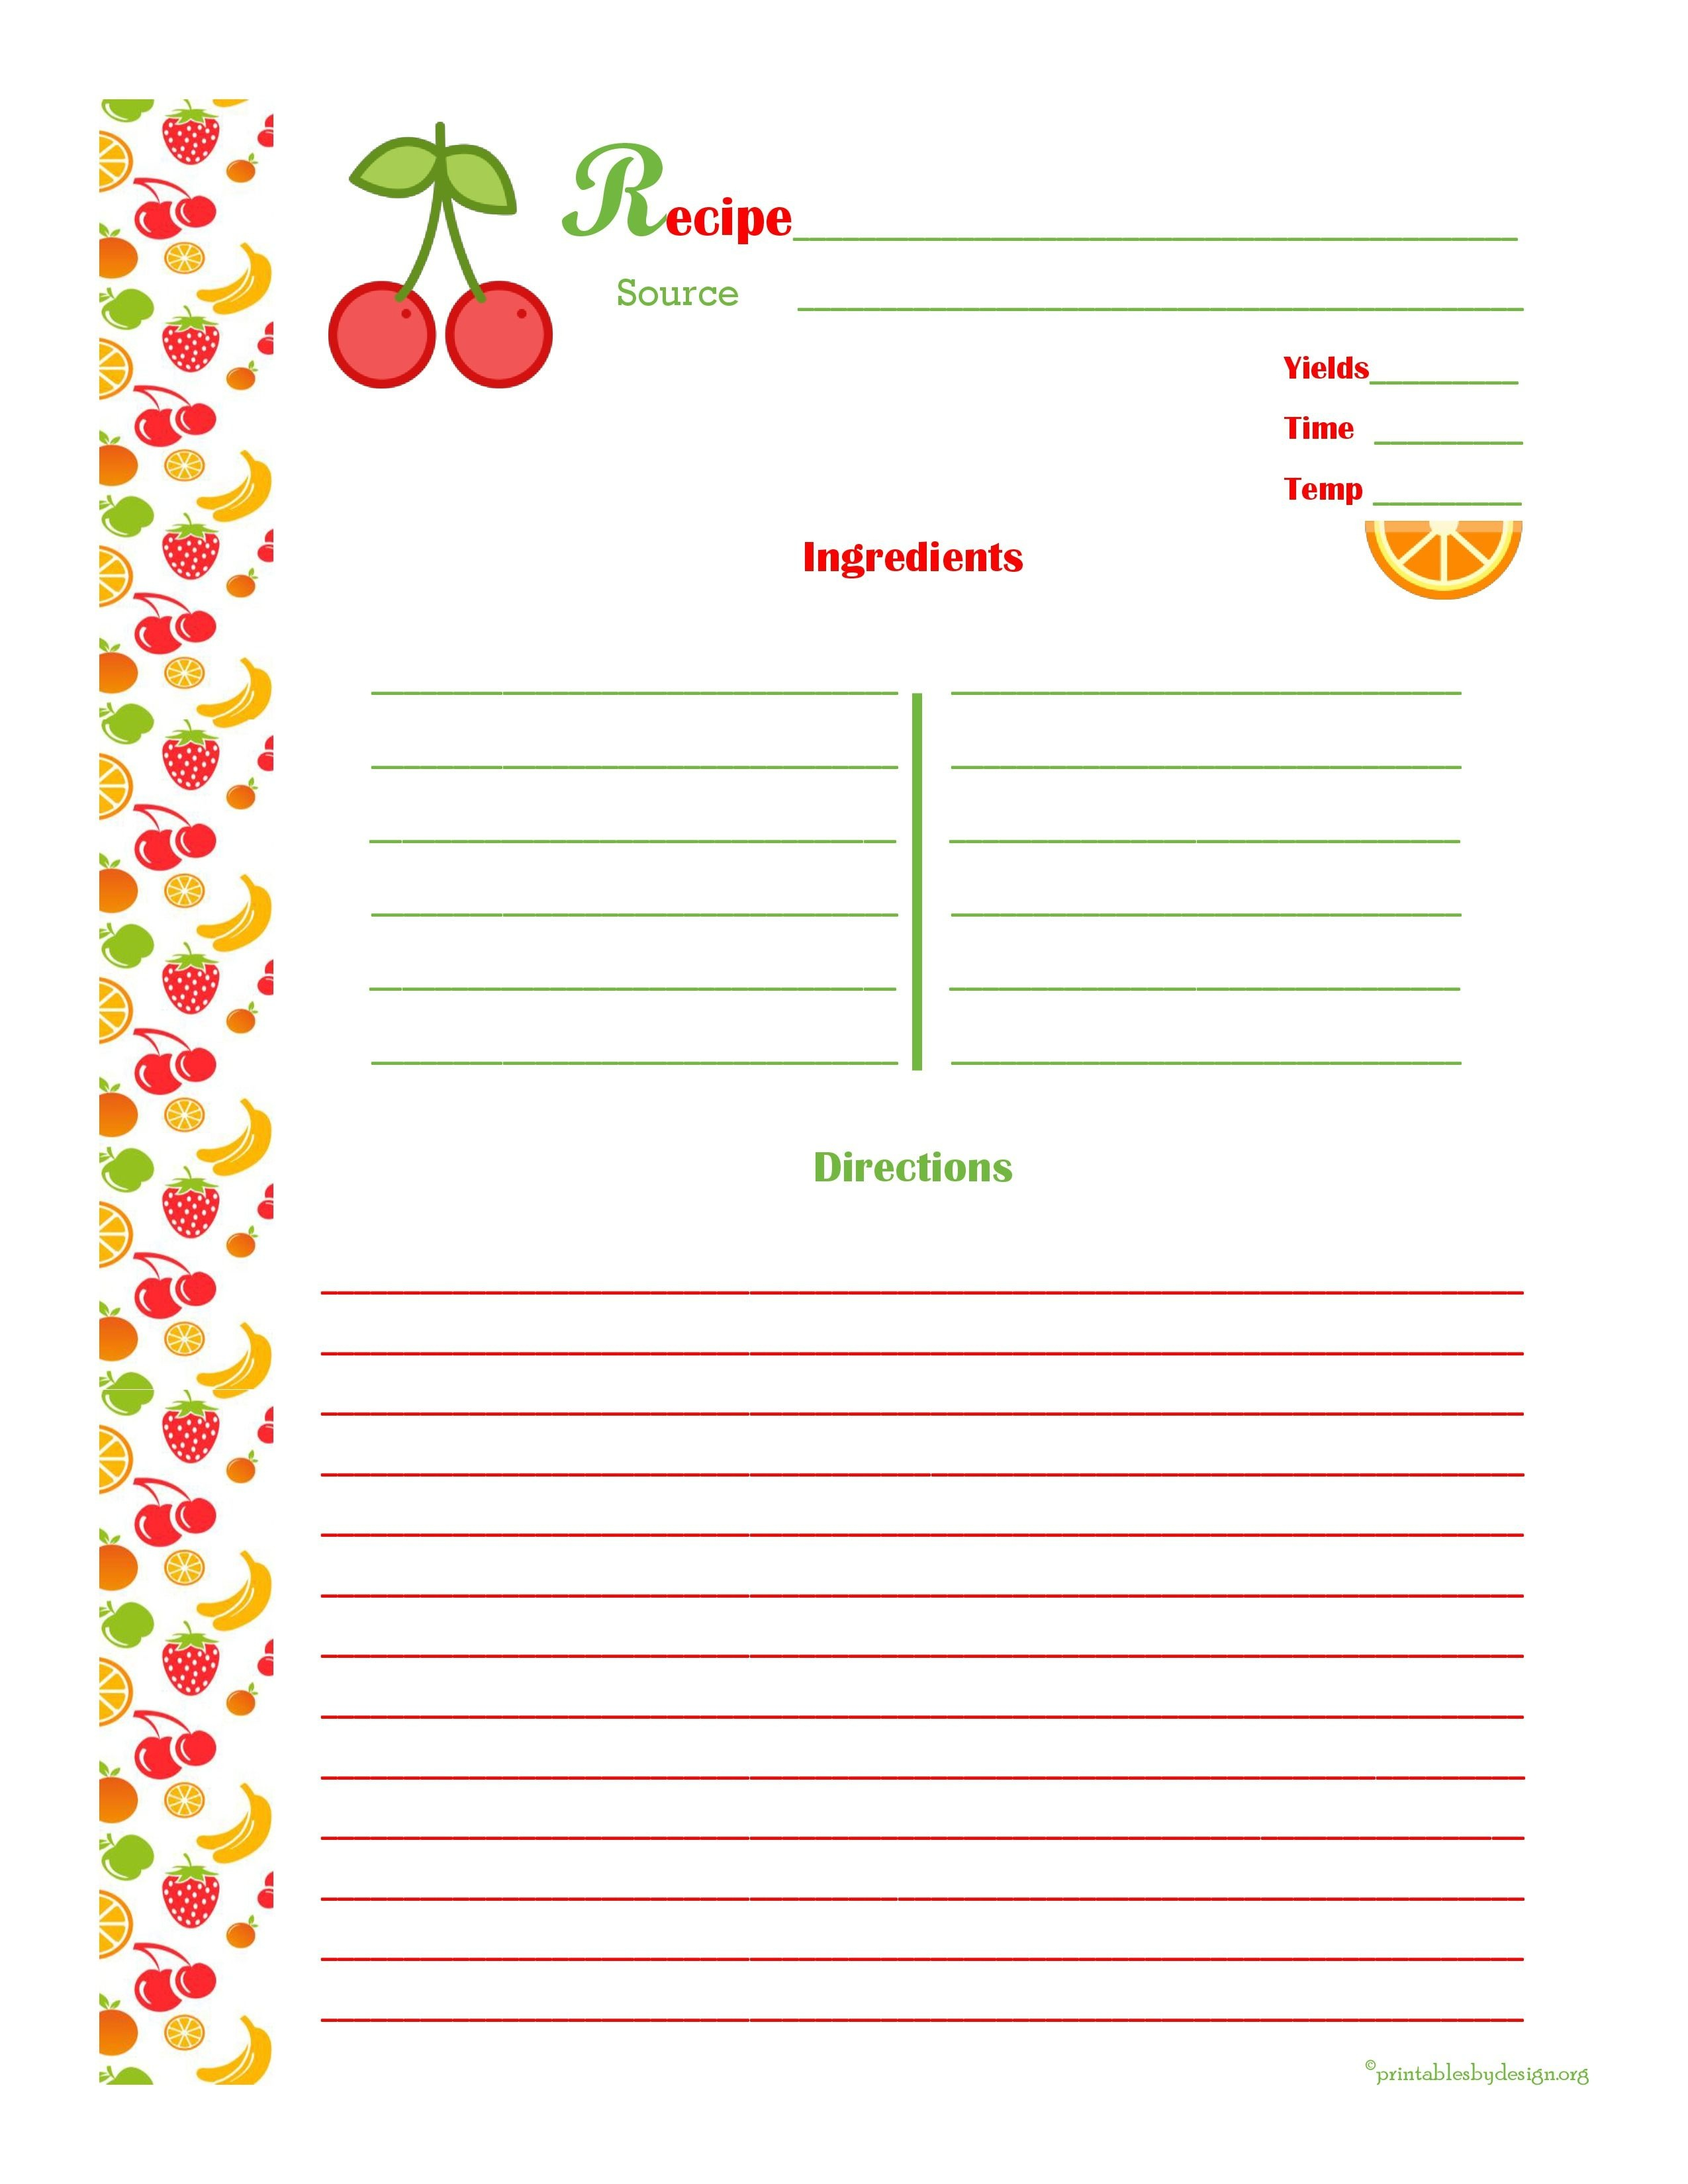 Cherry & Orange Recipe Card - Full Page | Cool Recipe Cards | Food - Free Printable Recipe Templates